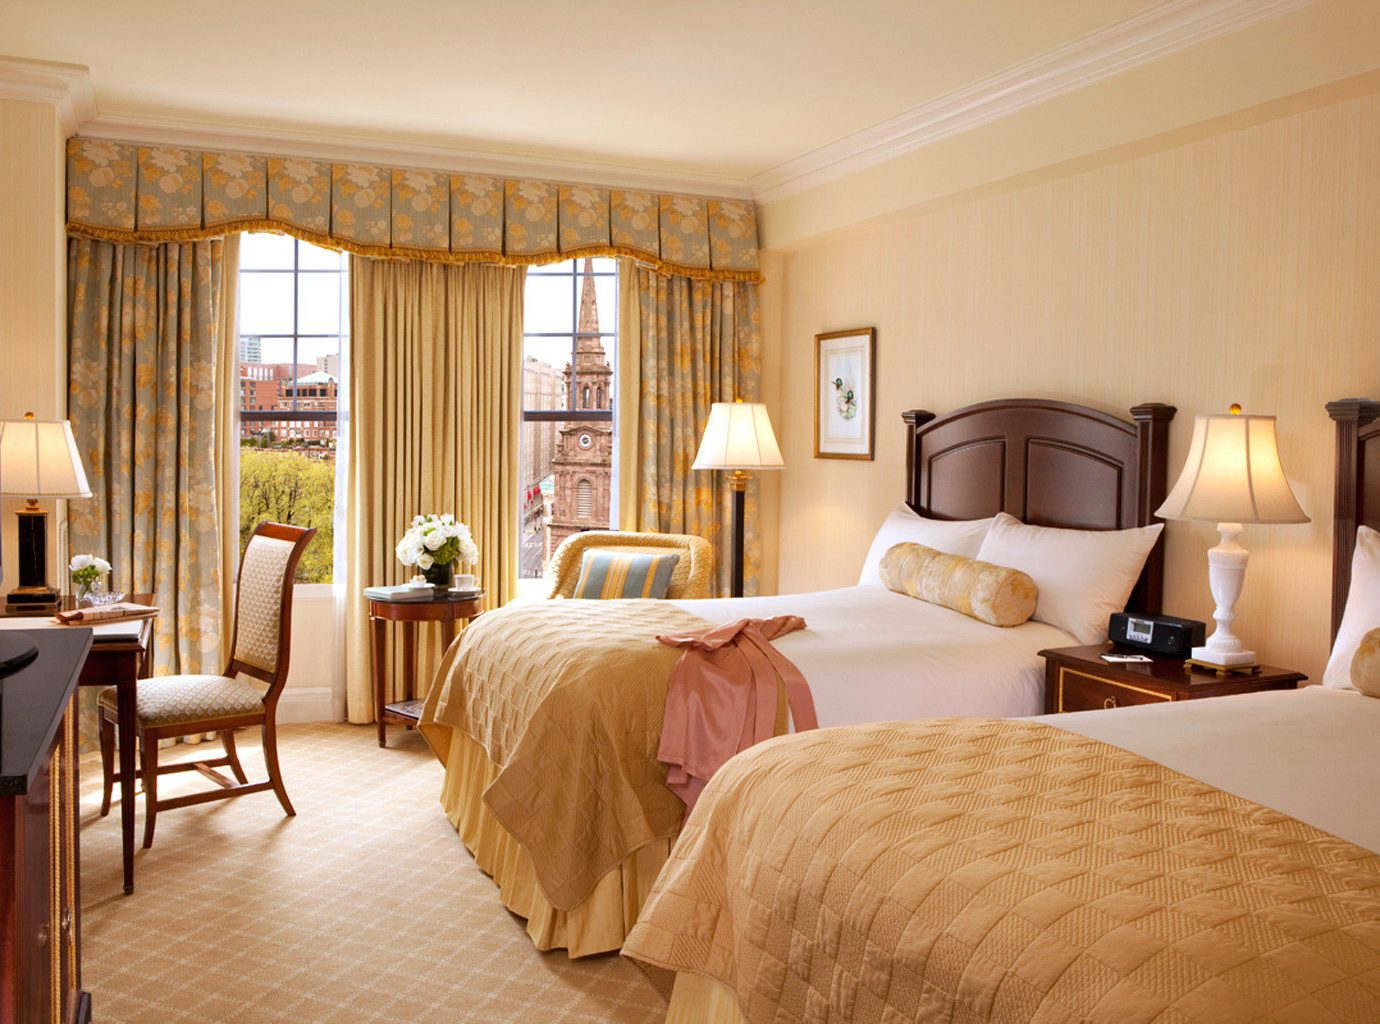 Bedroom City Classic Hotels Living Resort Scenic views Trip Ideas indoor wall room bed floor hotel ceiling window property Suite estate interior design home living room real estate cottage apartment furniture